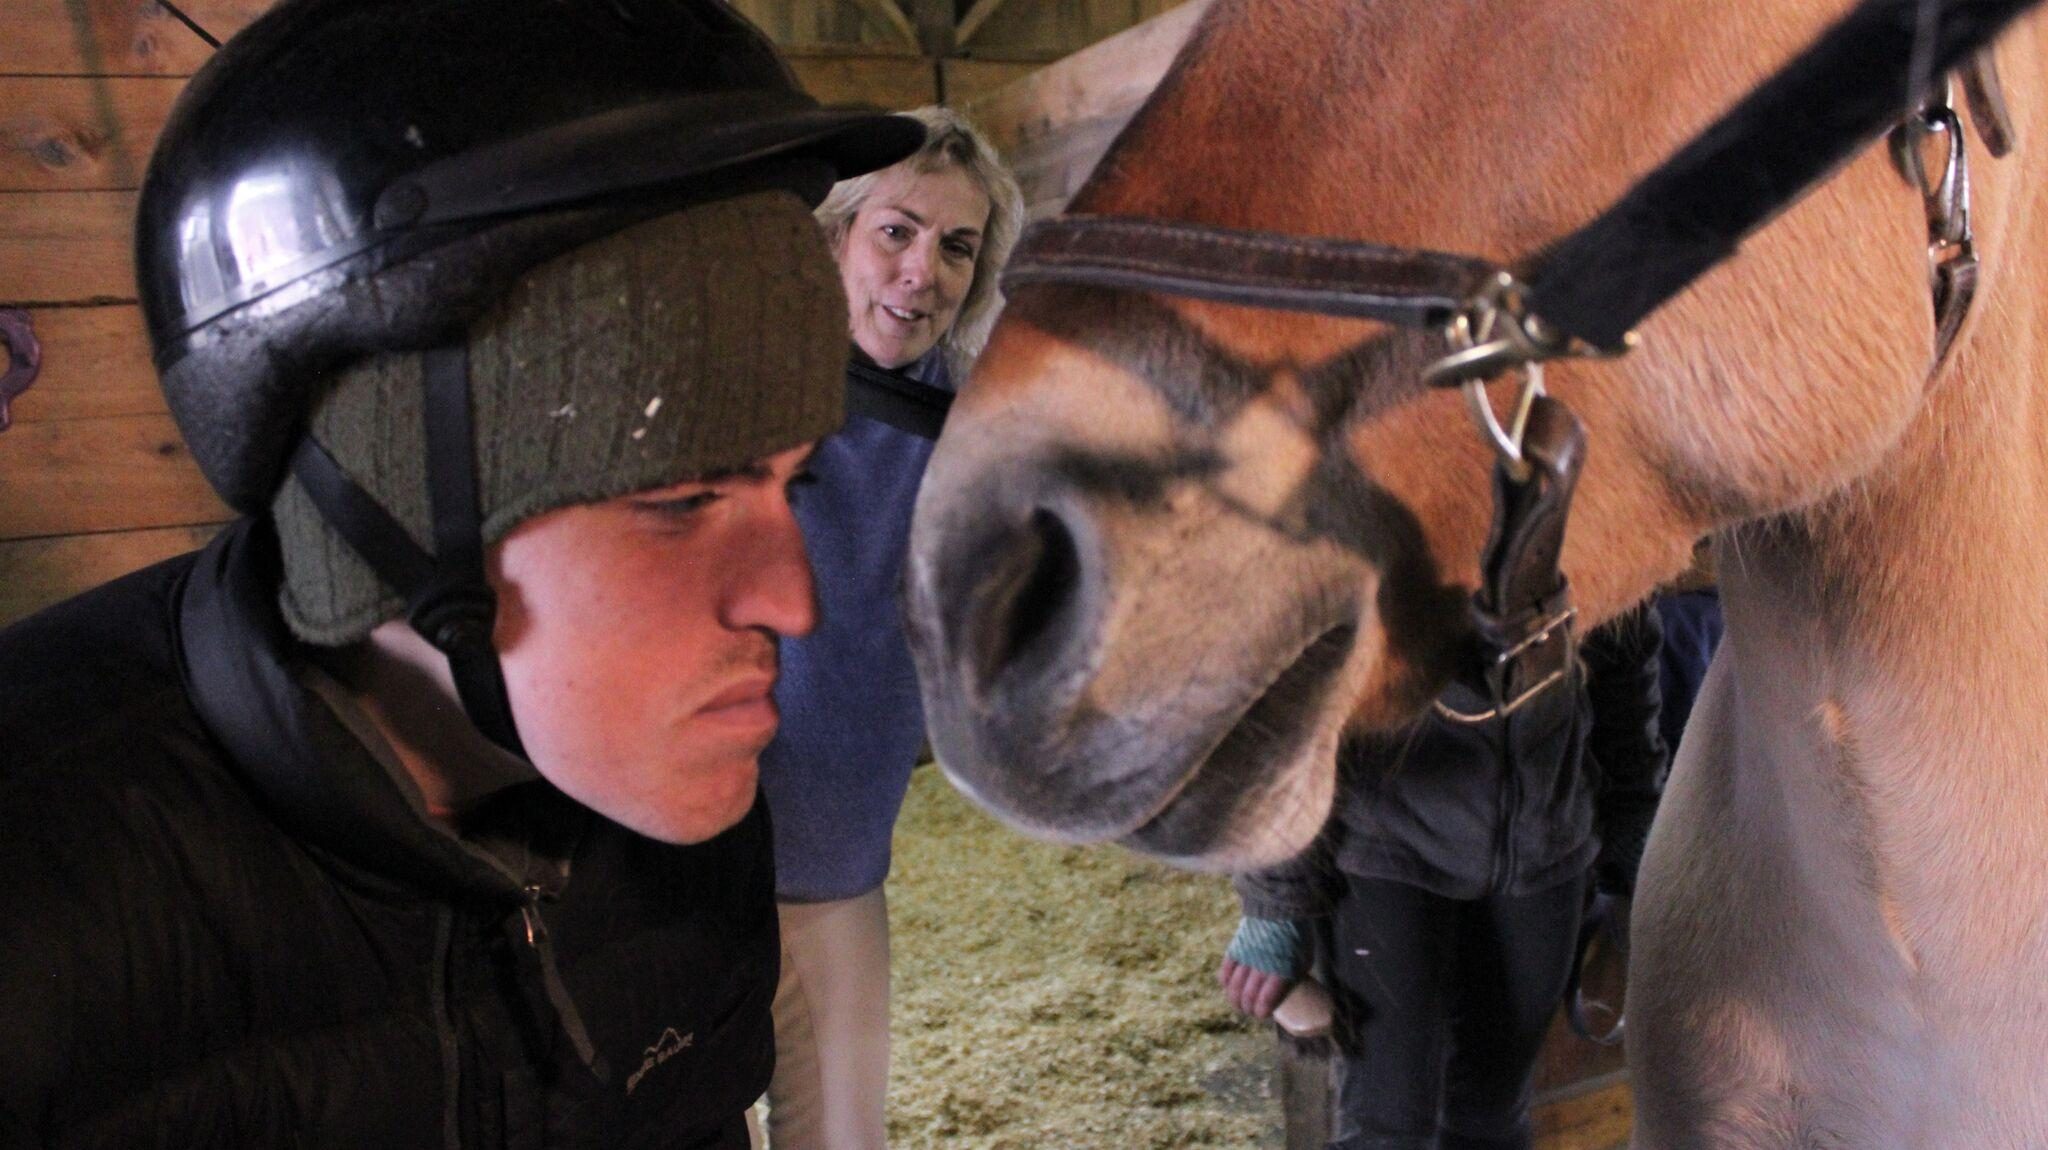 Andy Tranfaglia, who has fragile X, with Daniela Morse and Aurora the horse